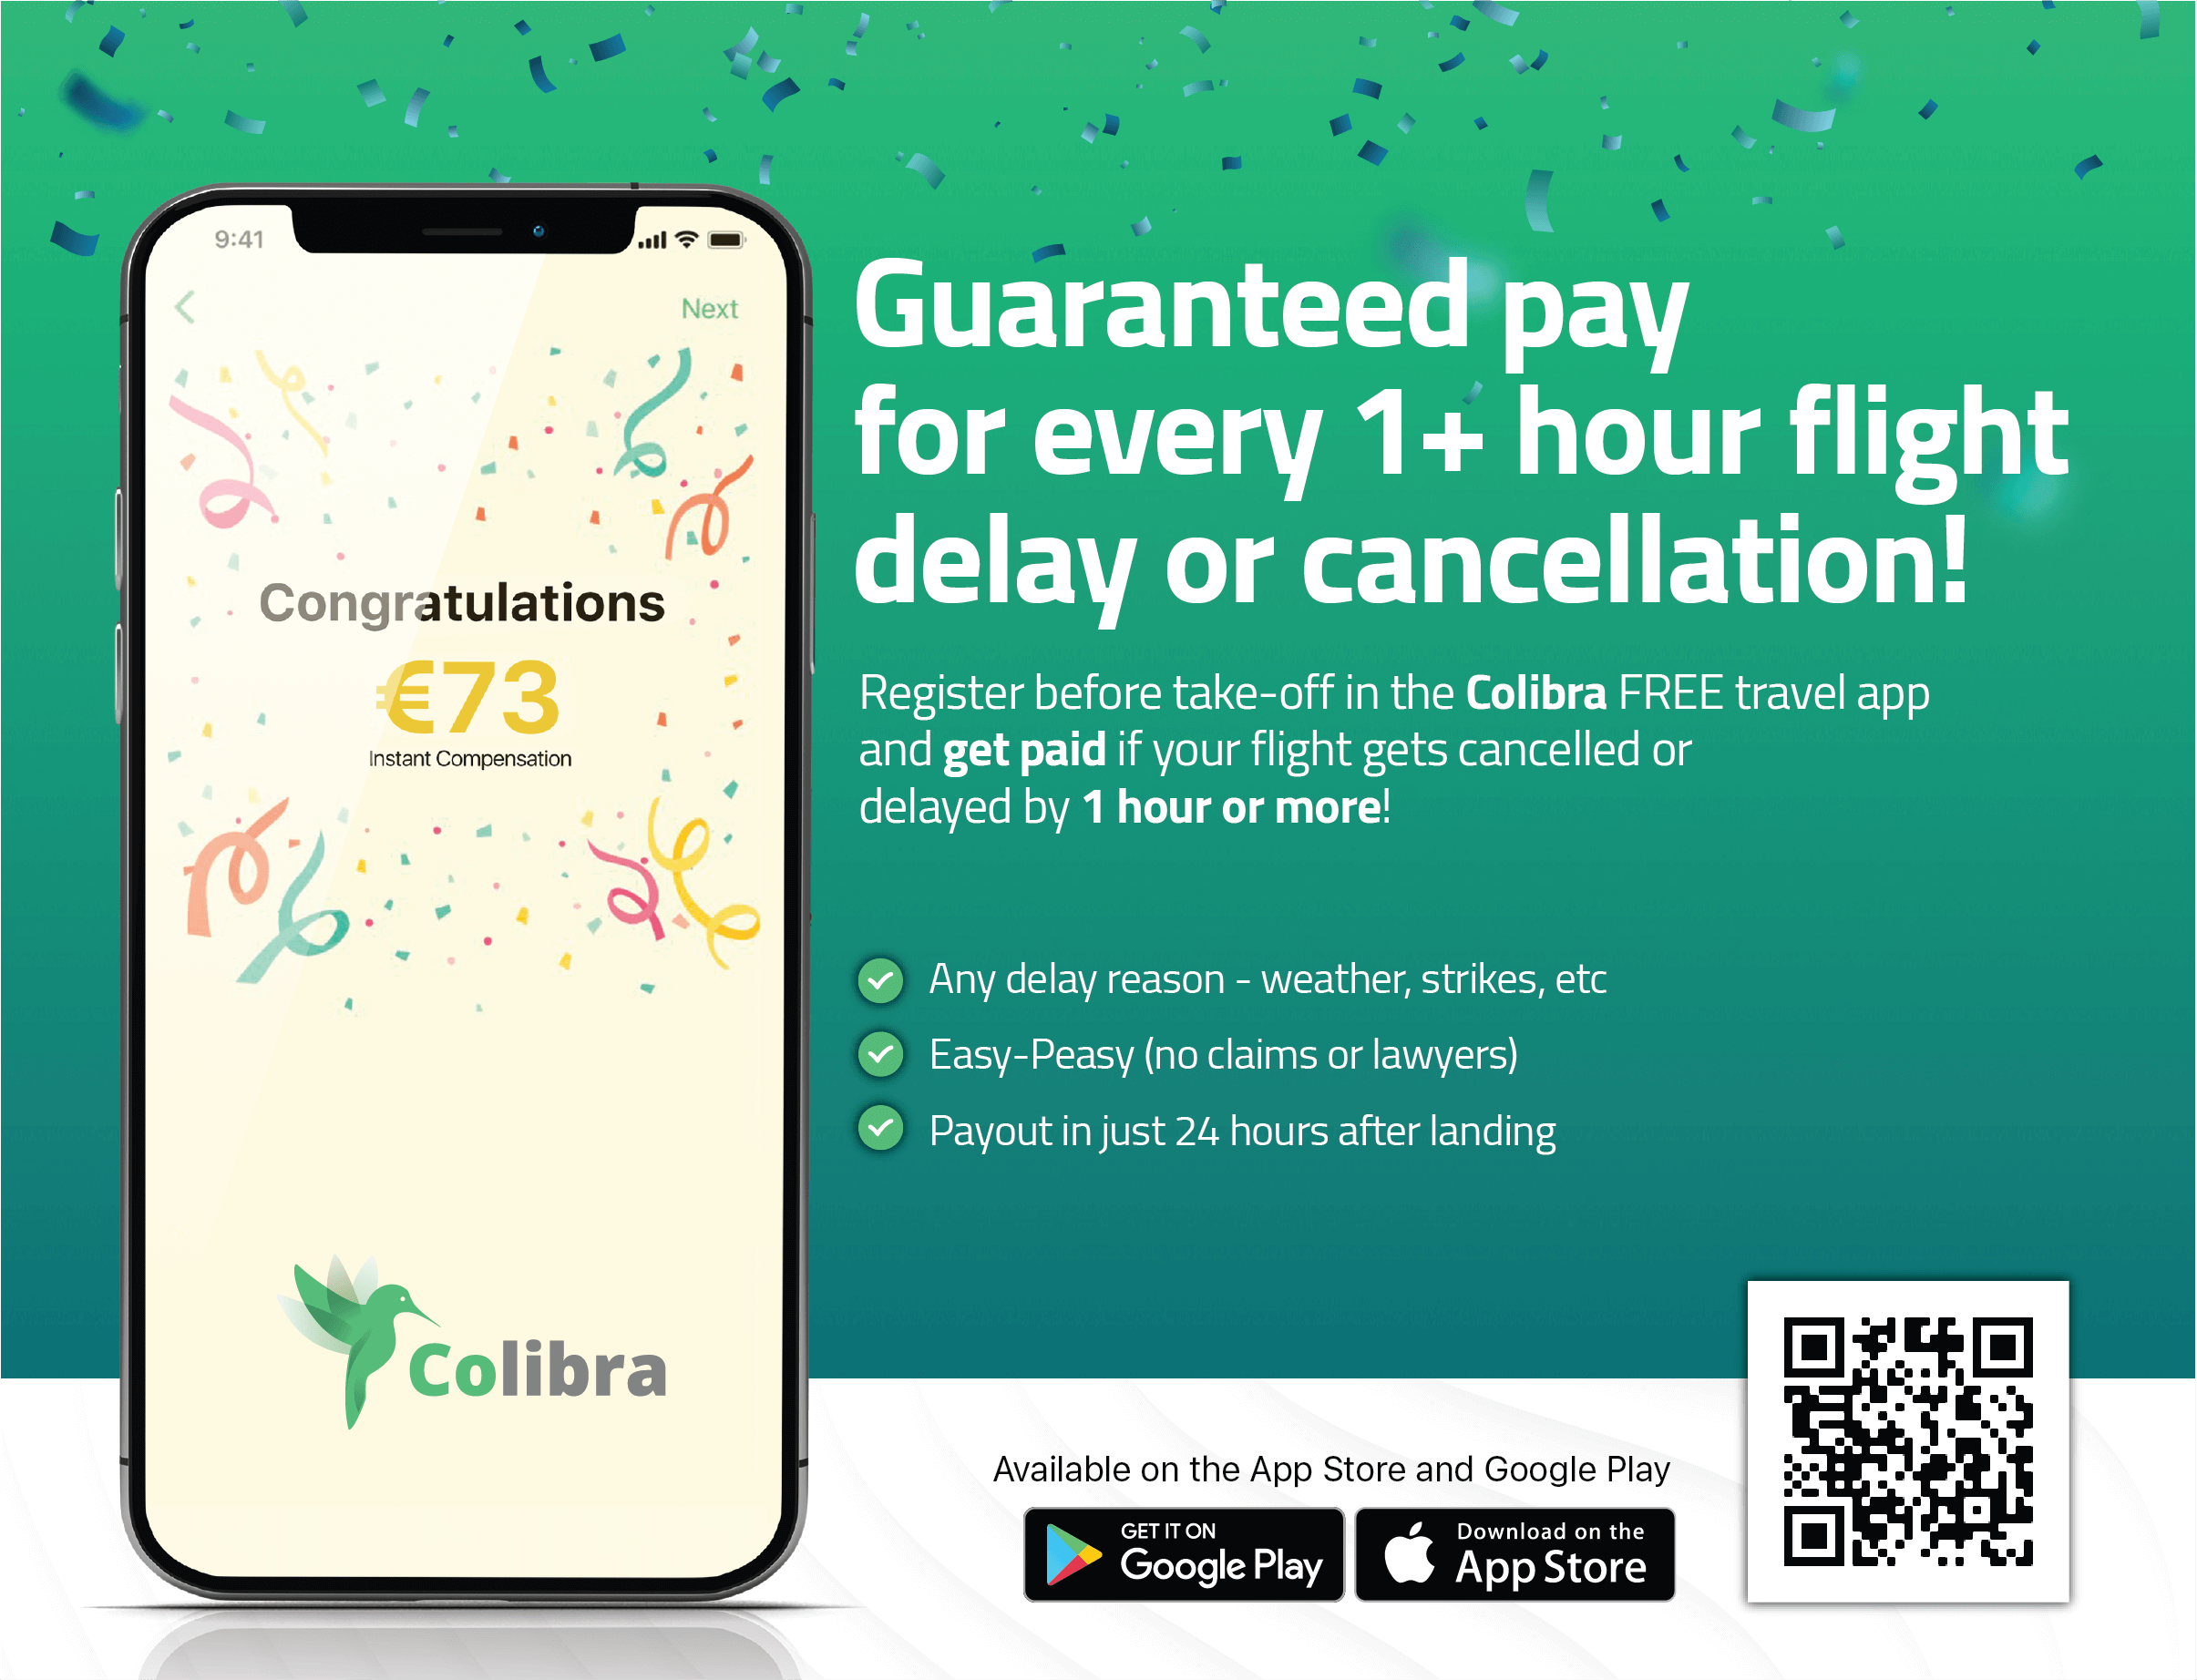 Discover how Colibra can pay compensation to you if your flight is delayed by more than an hour